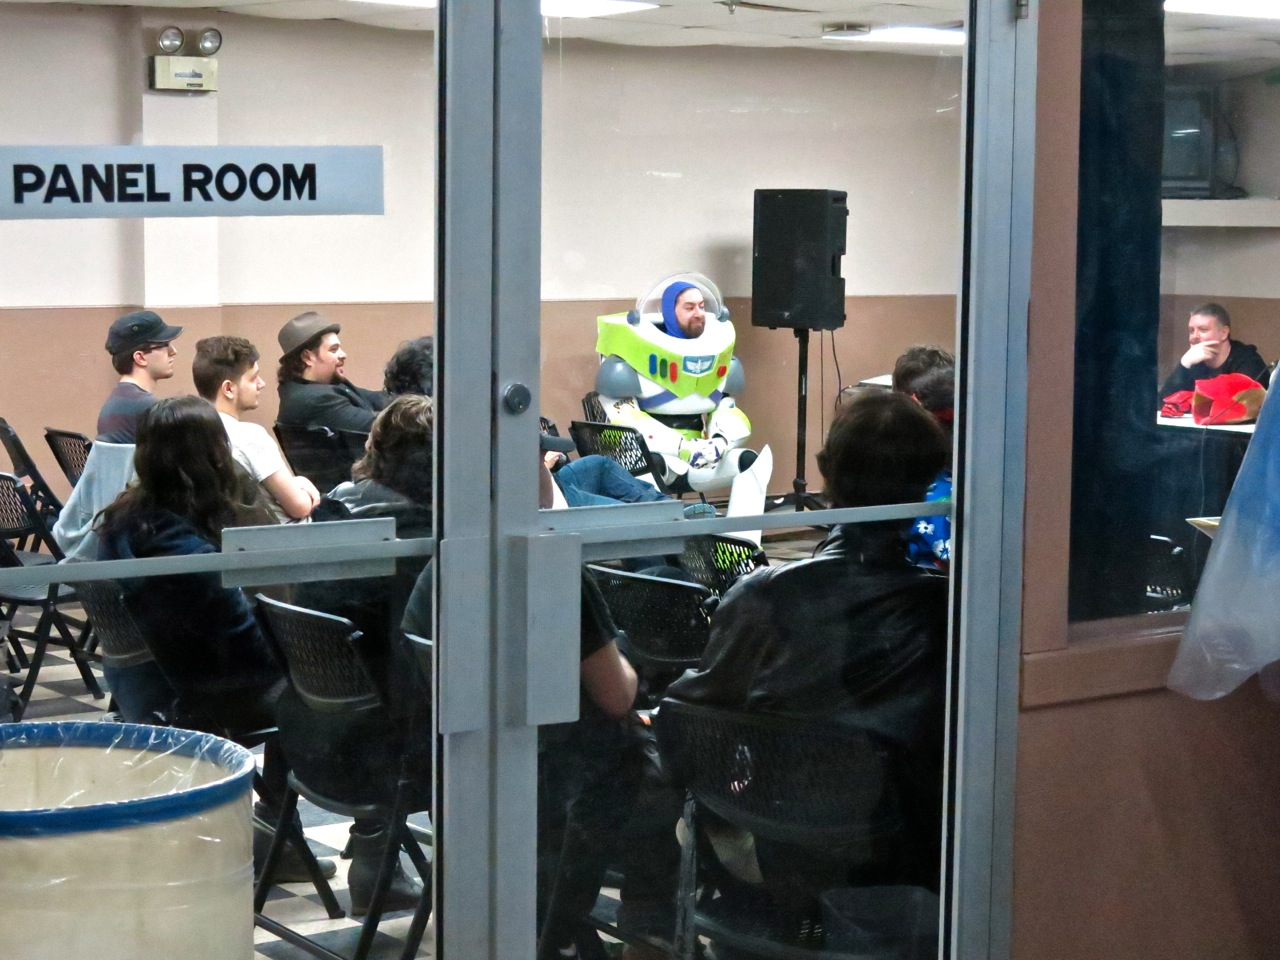 Buzz Lightyear looking all serious in a meeting. :-D